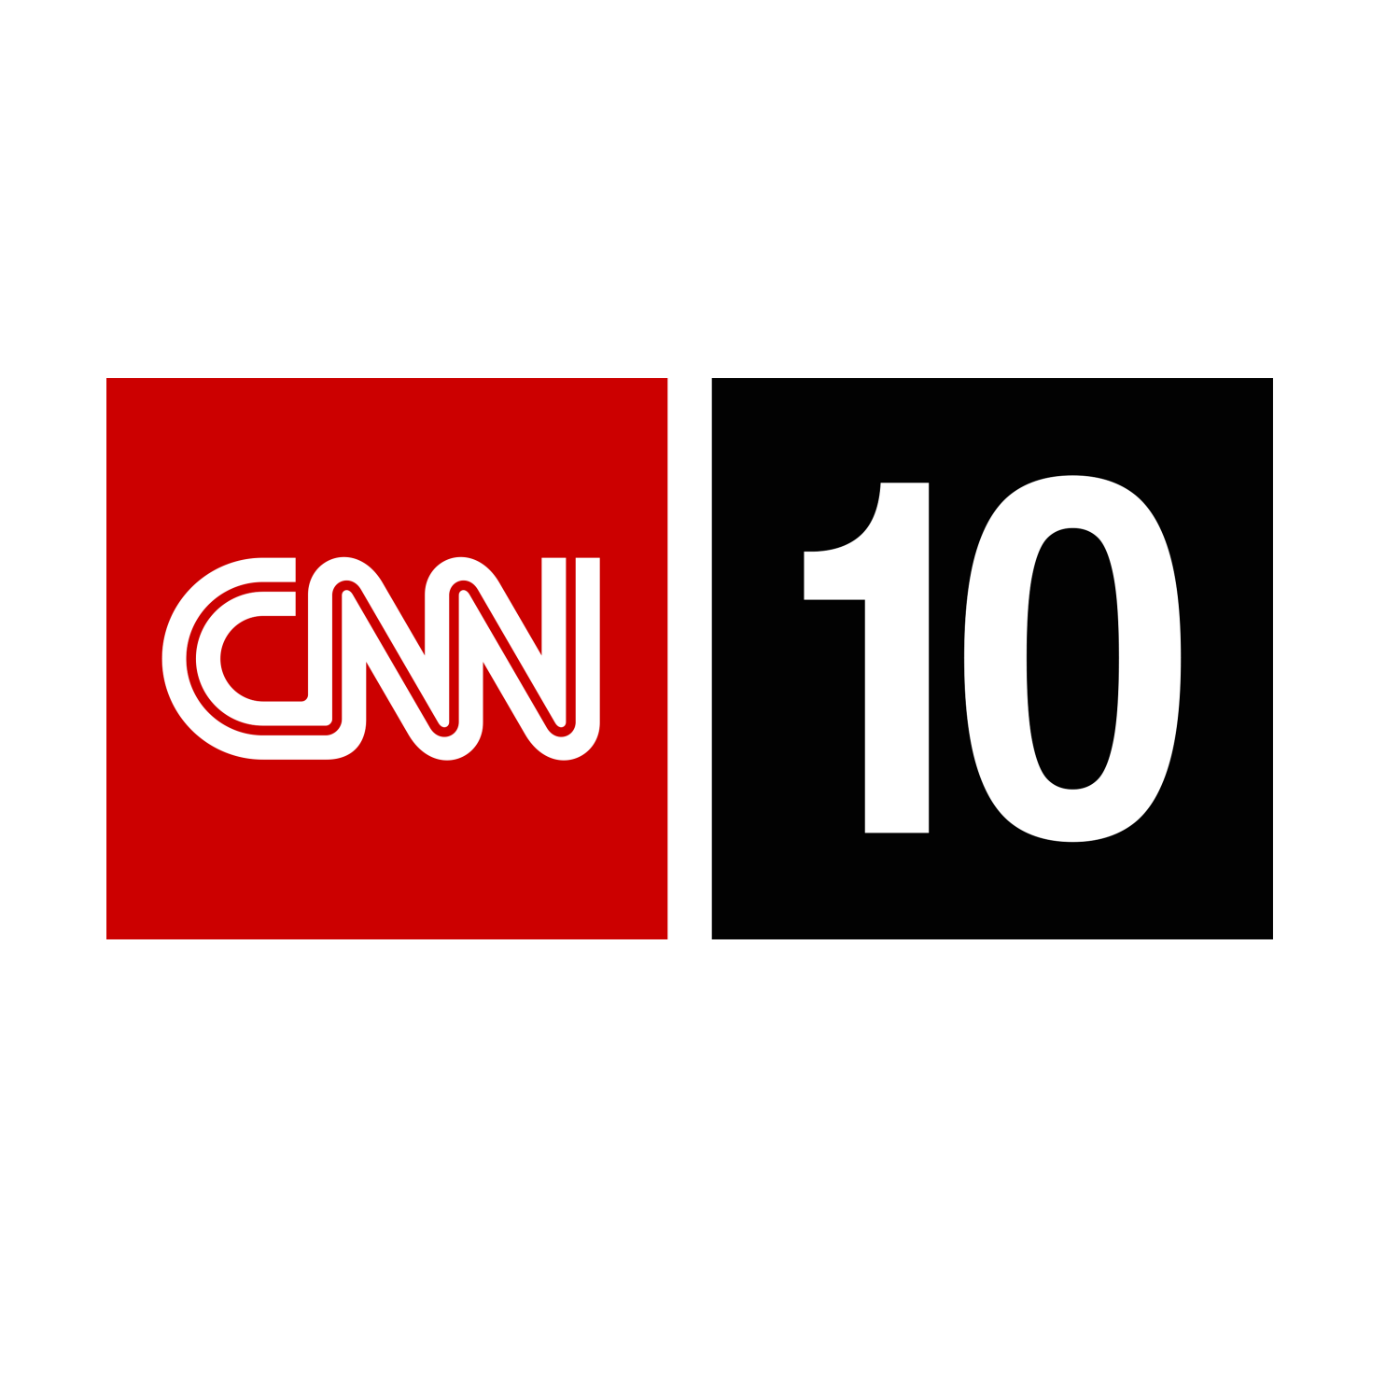 CNN Student News - March 1, 2013